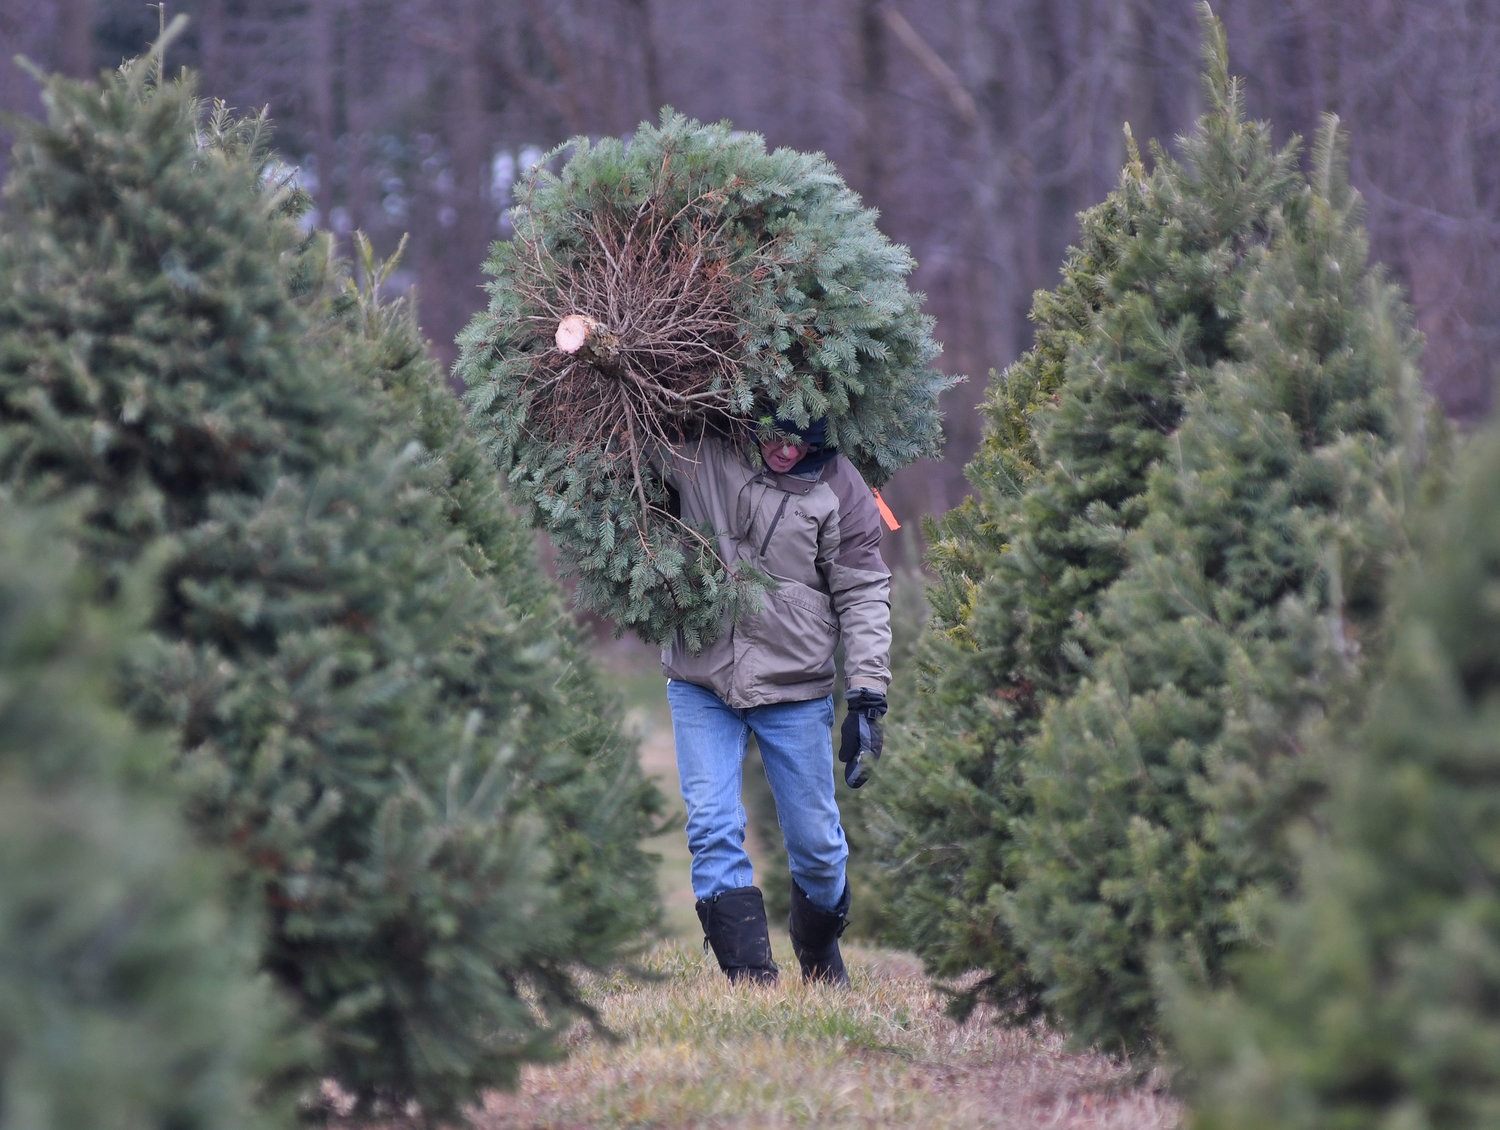 THE PICK — Jerry Johnson of Verona carries his Douglas Fir in to be wrapped up at Shuster Tree Farm on Friday in Verona. Johnson said he marked his tree a couple weeks ago.